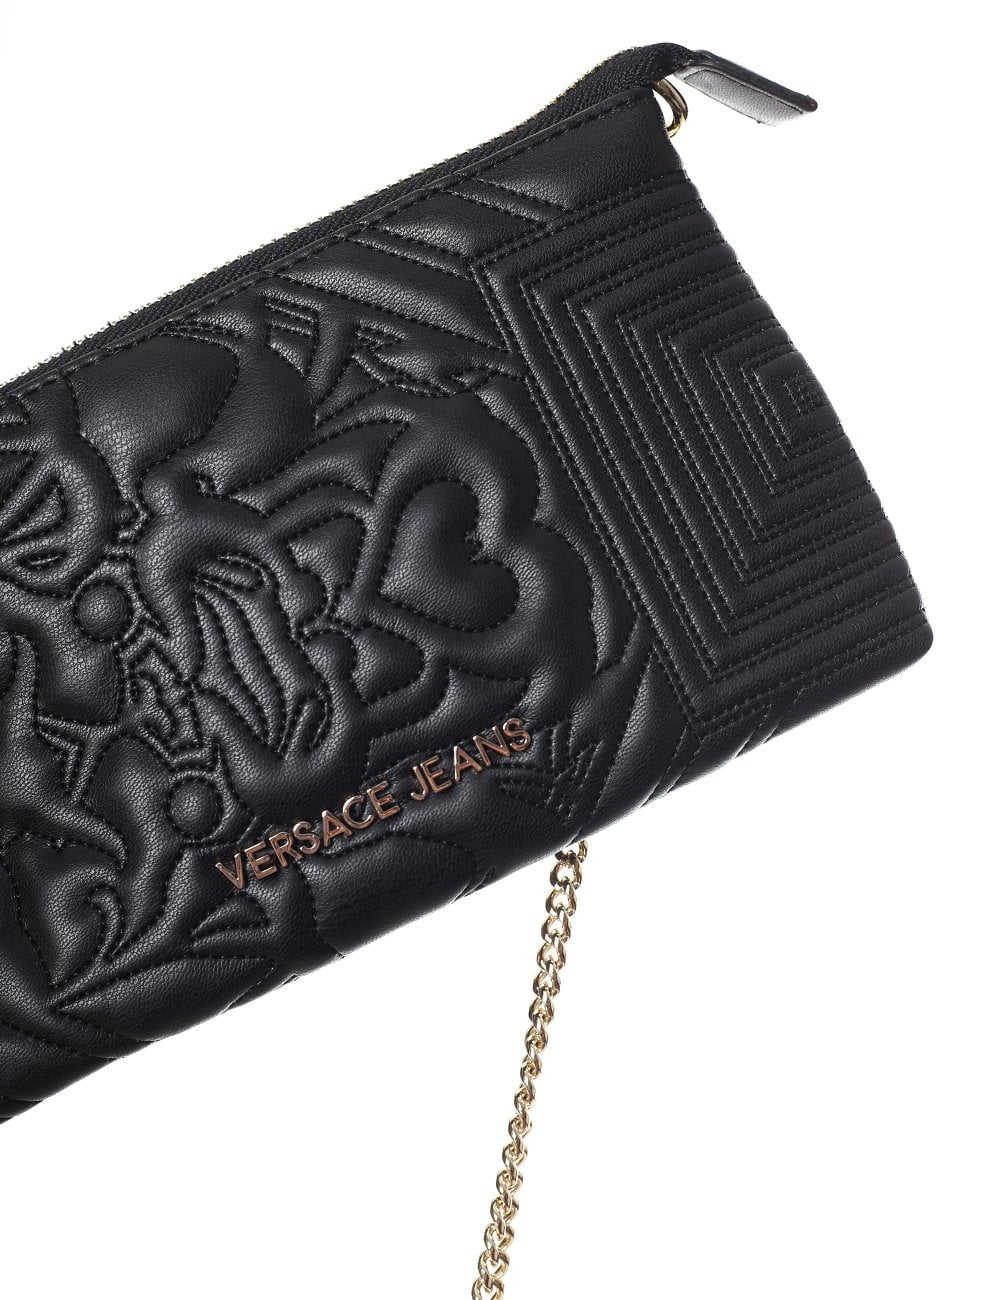 68140ef1e224 Versace Jeans Women s Quilted Wave Small Crossbody Bag